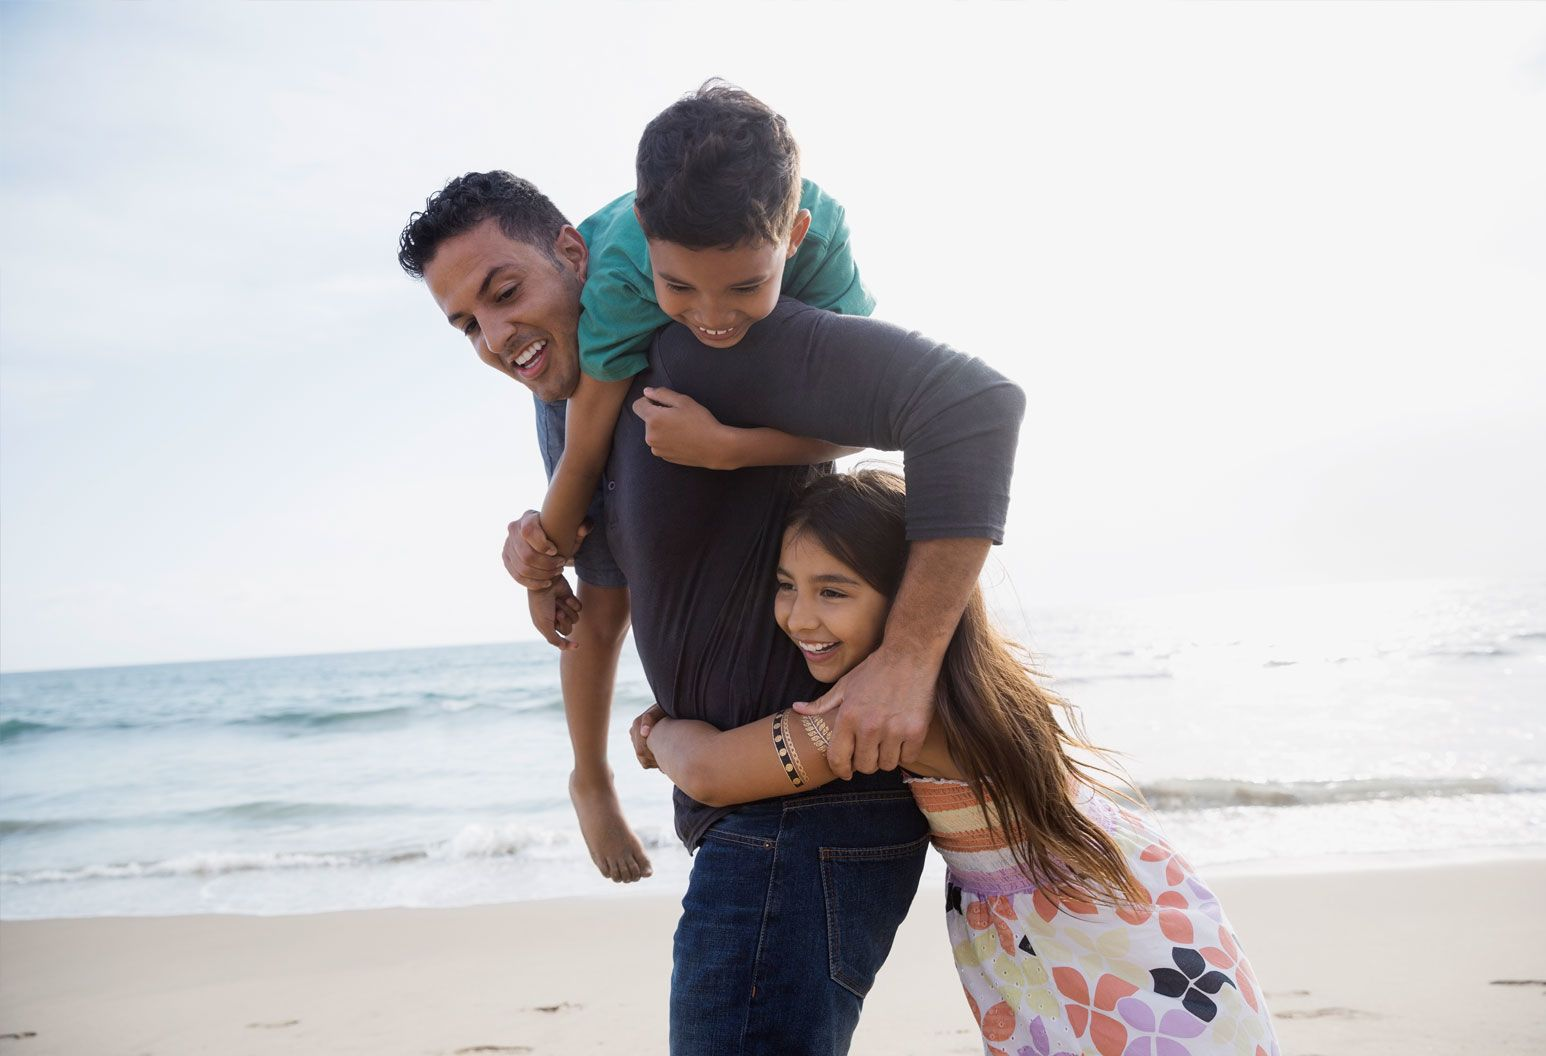 A father and his two children, a boy and girl, play together on the beach. The boy is on the dad's back and the girl has her arms wrapped around his waist.